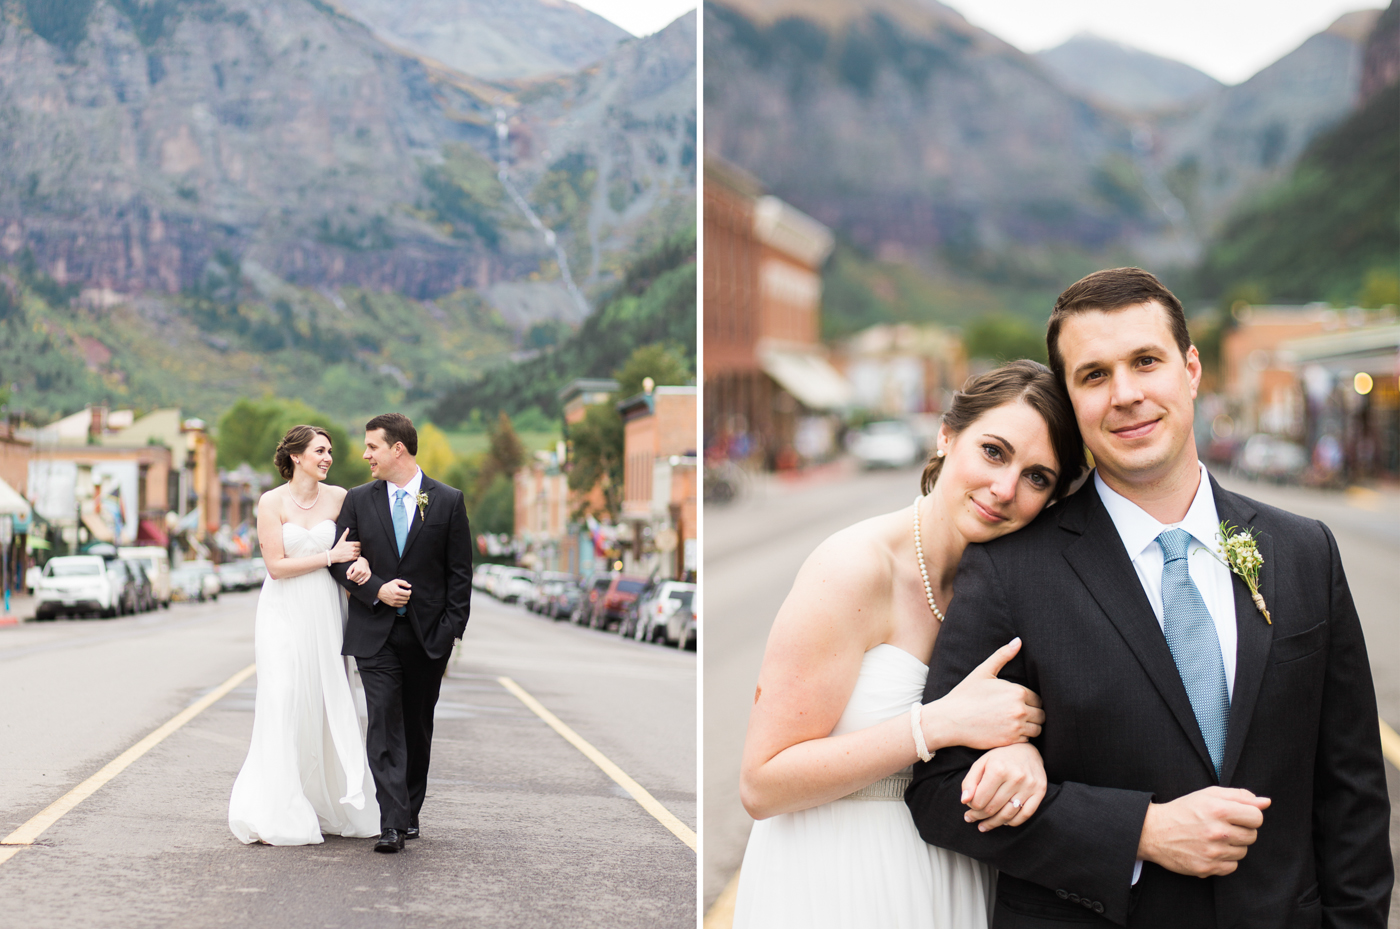 Telluride-Wedding-Photographer-6.jpg